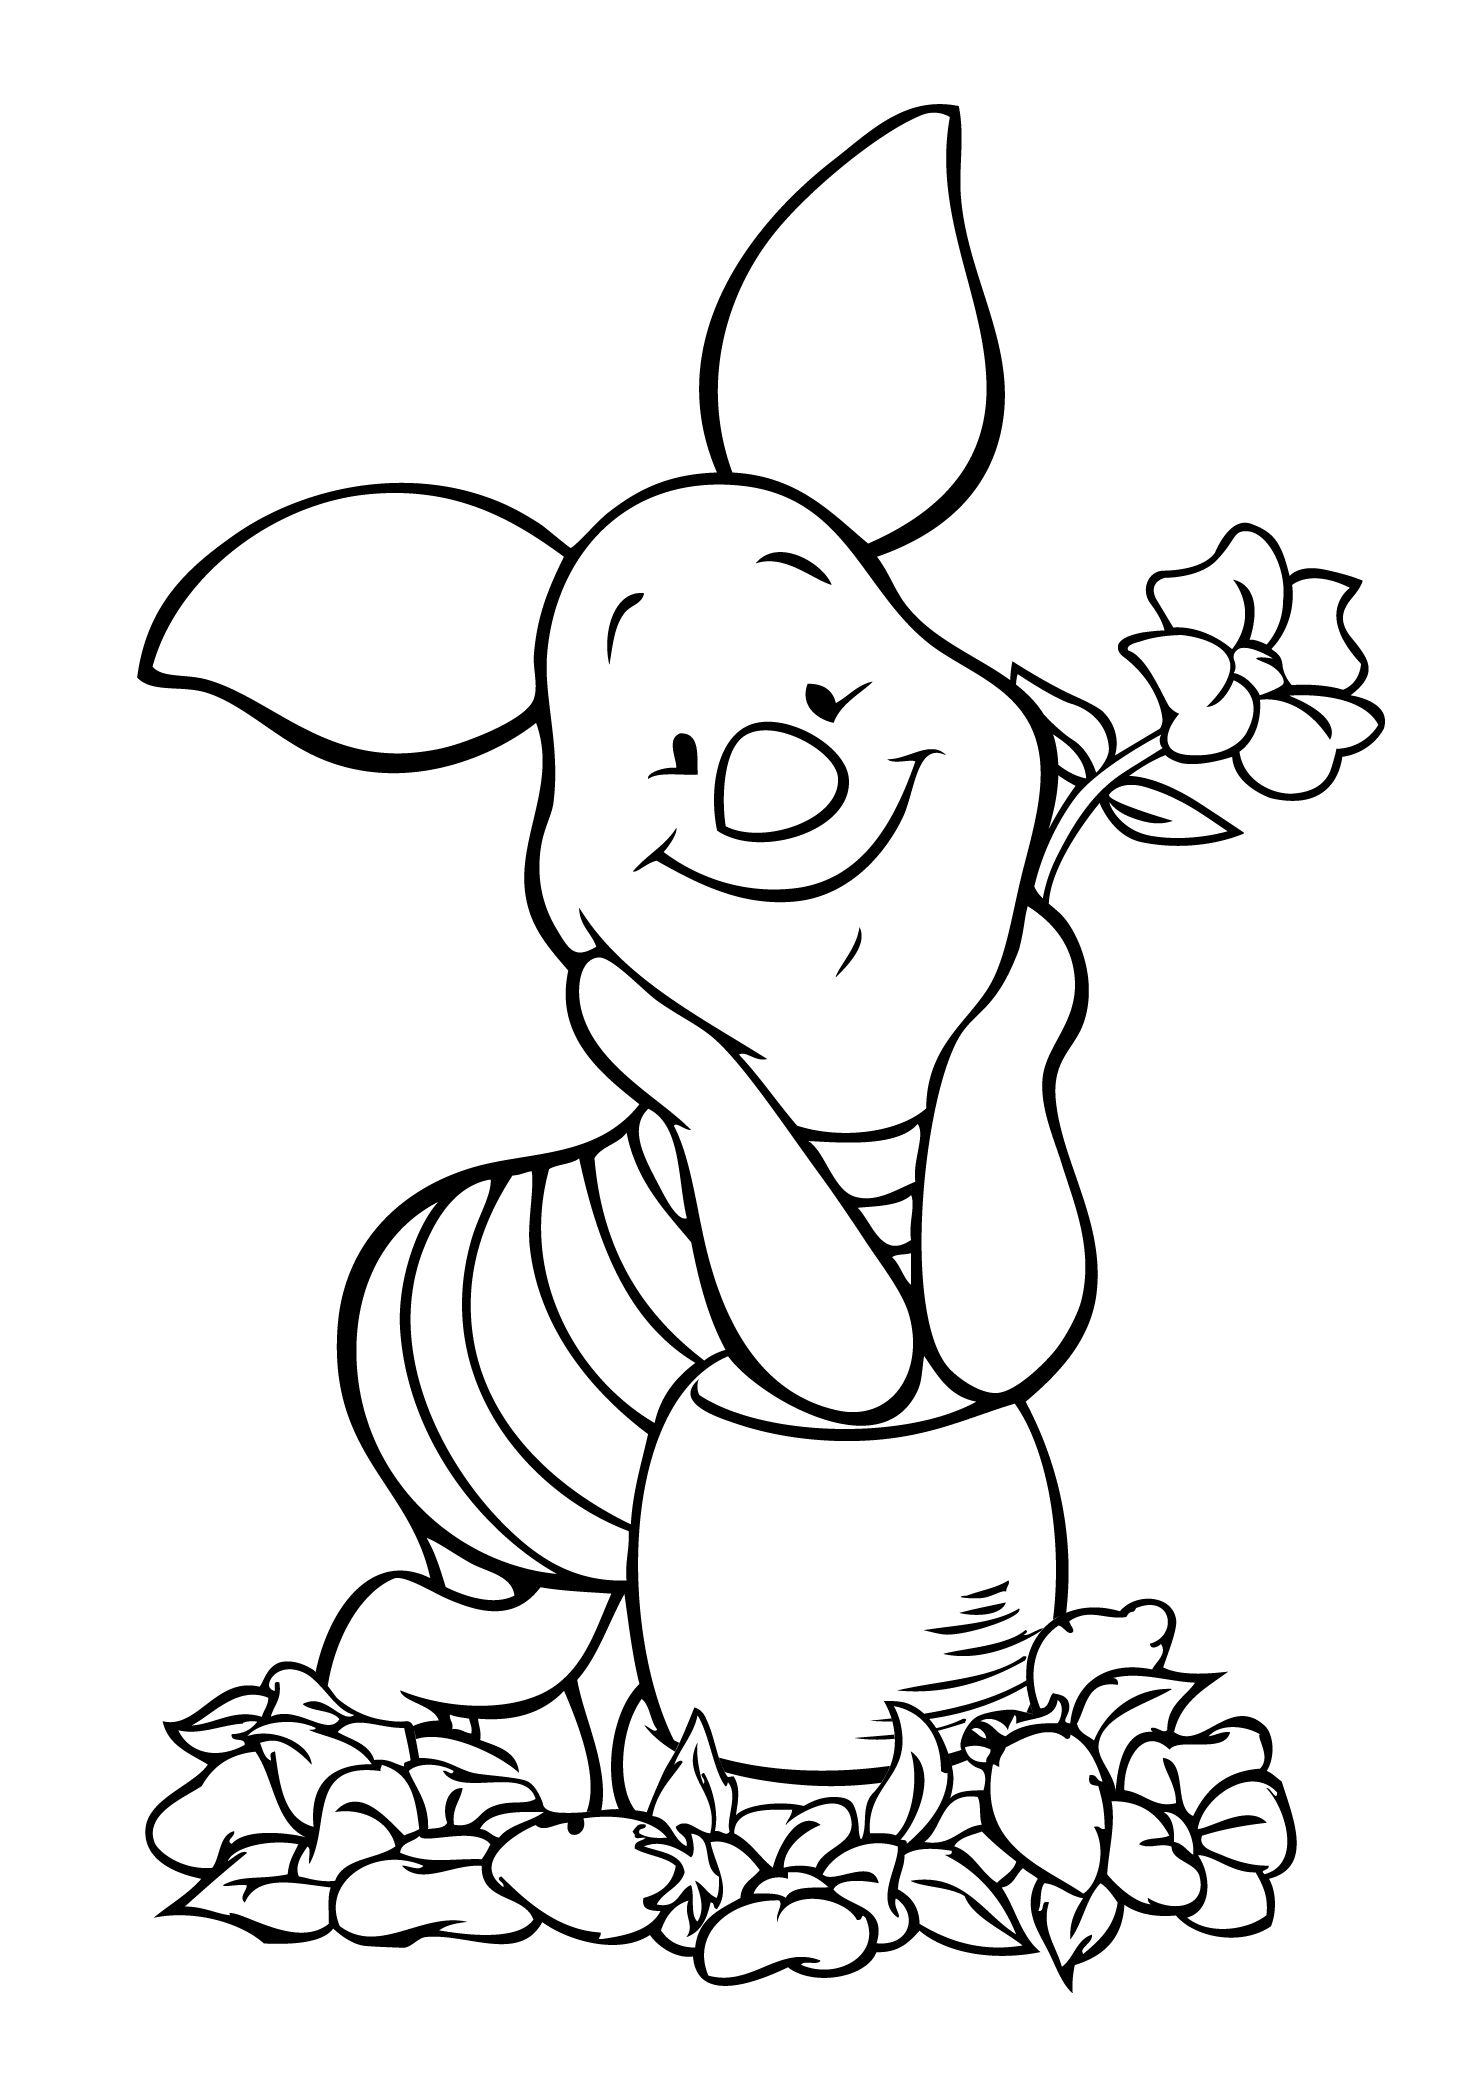 1483x2079 Pooh And Piglet Drawing Winnie Pooh Piglet Coloring Page